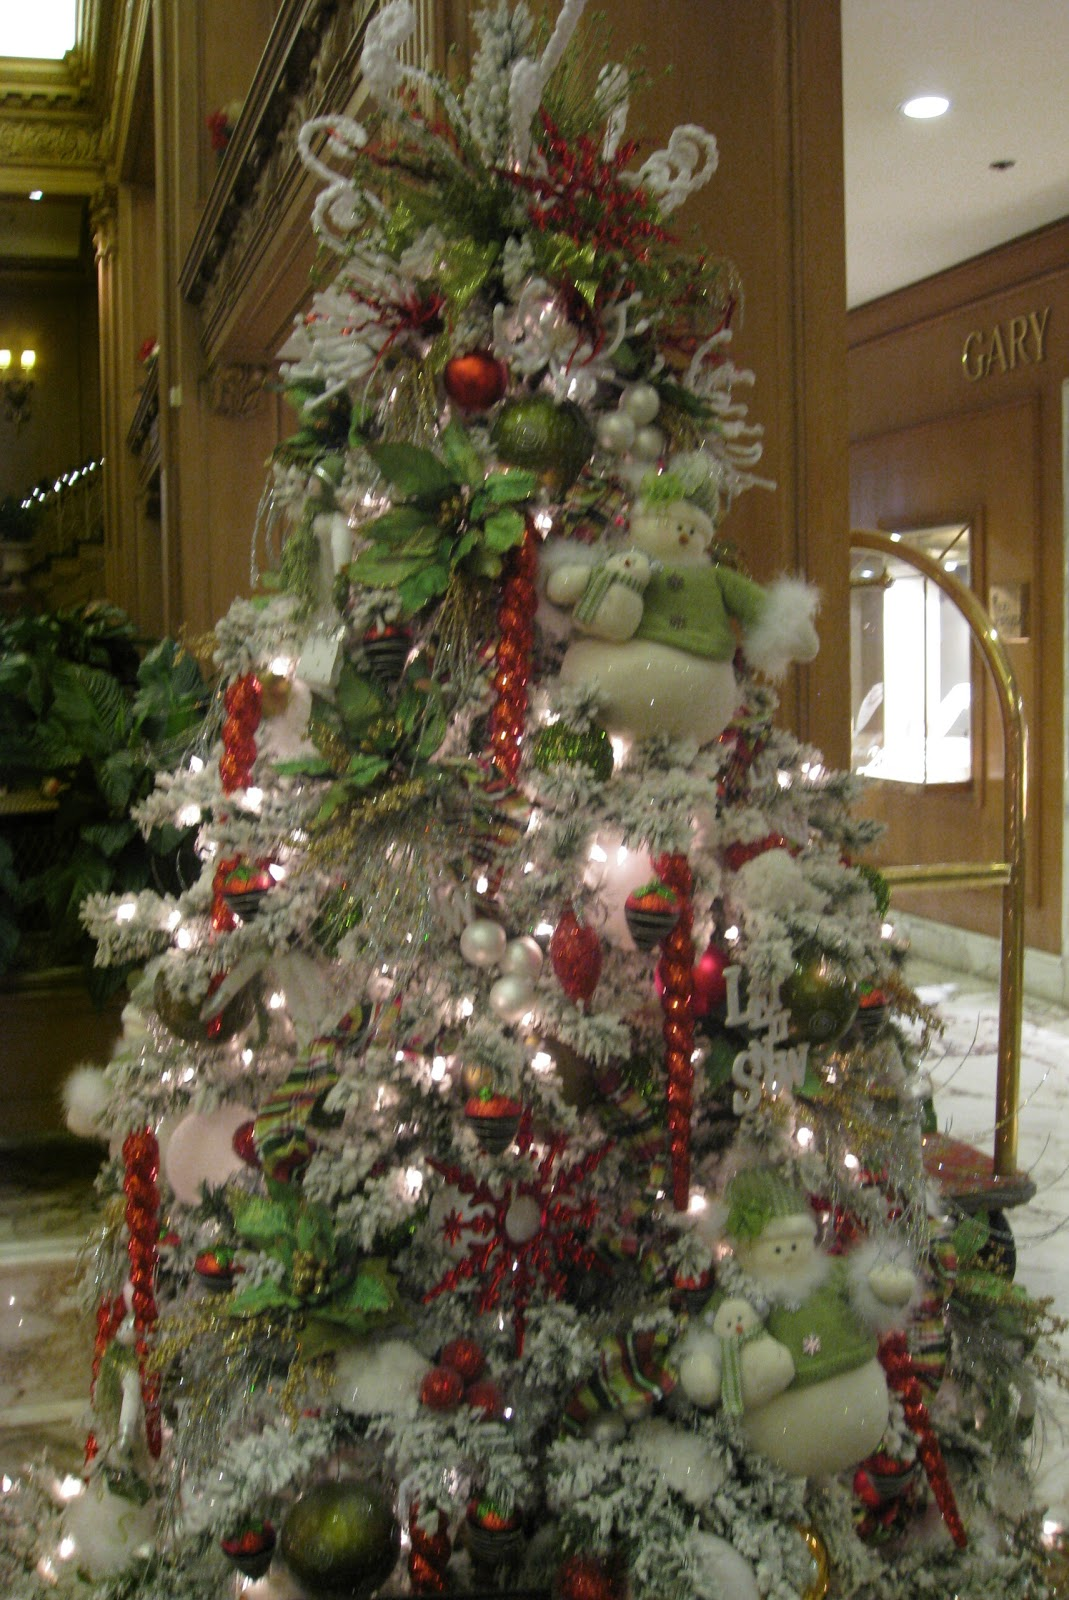 decorated Christmas trees.